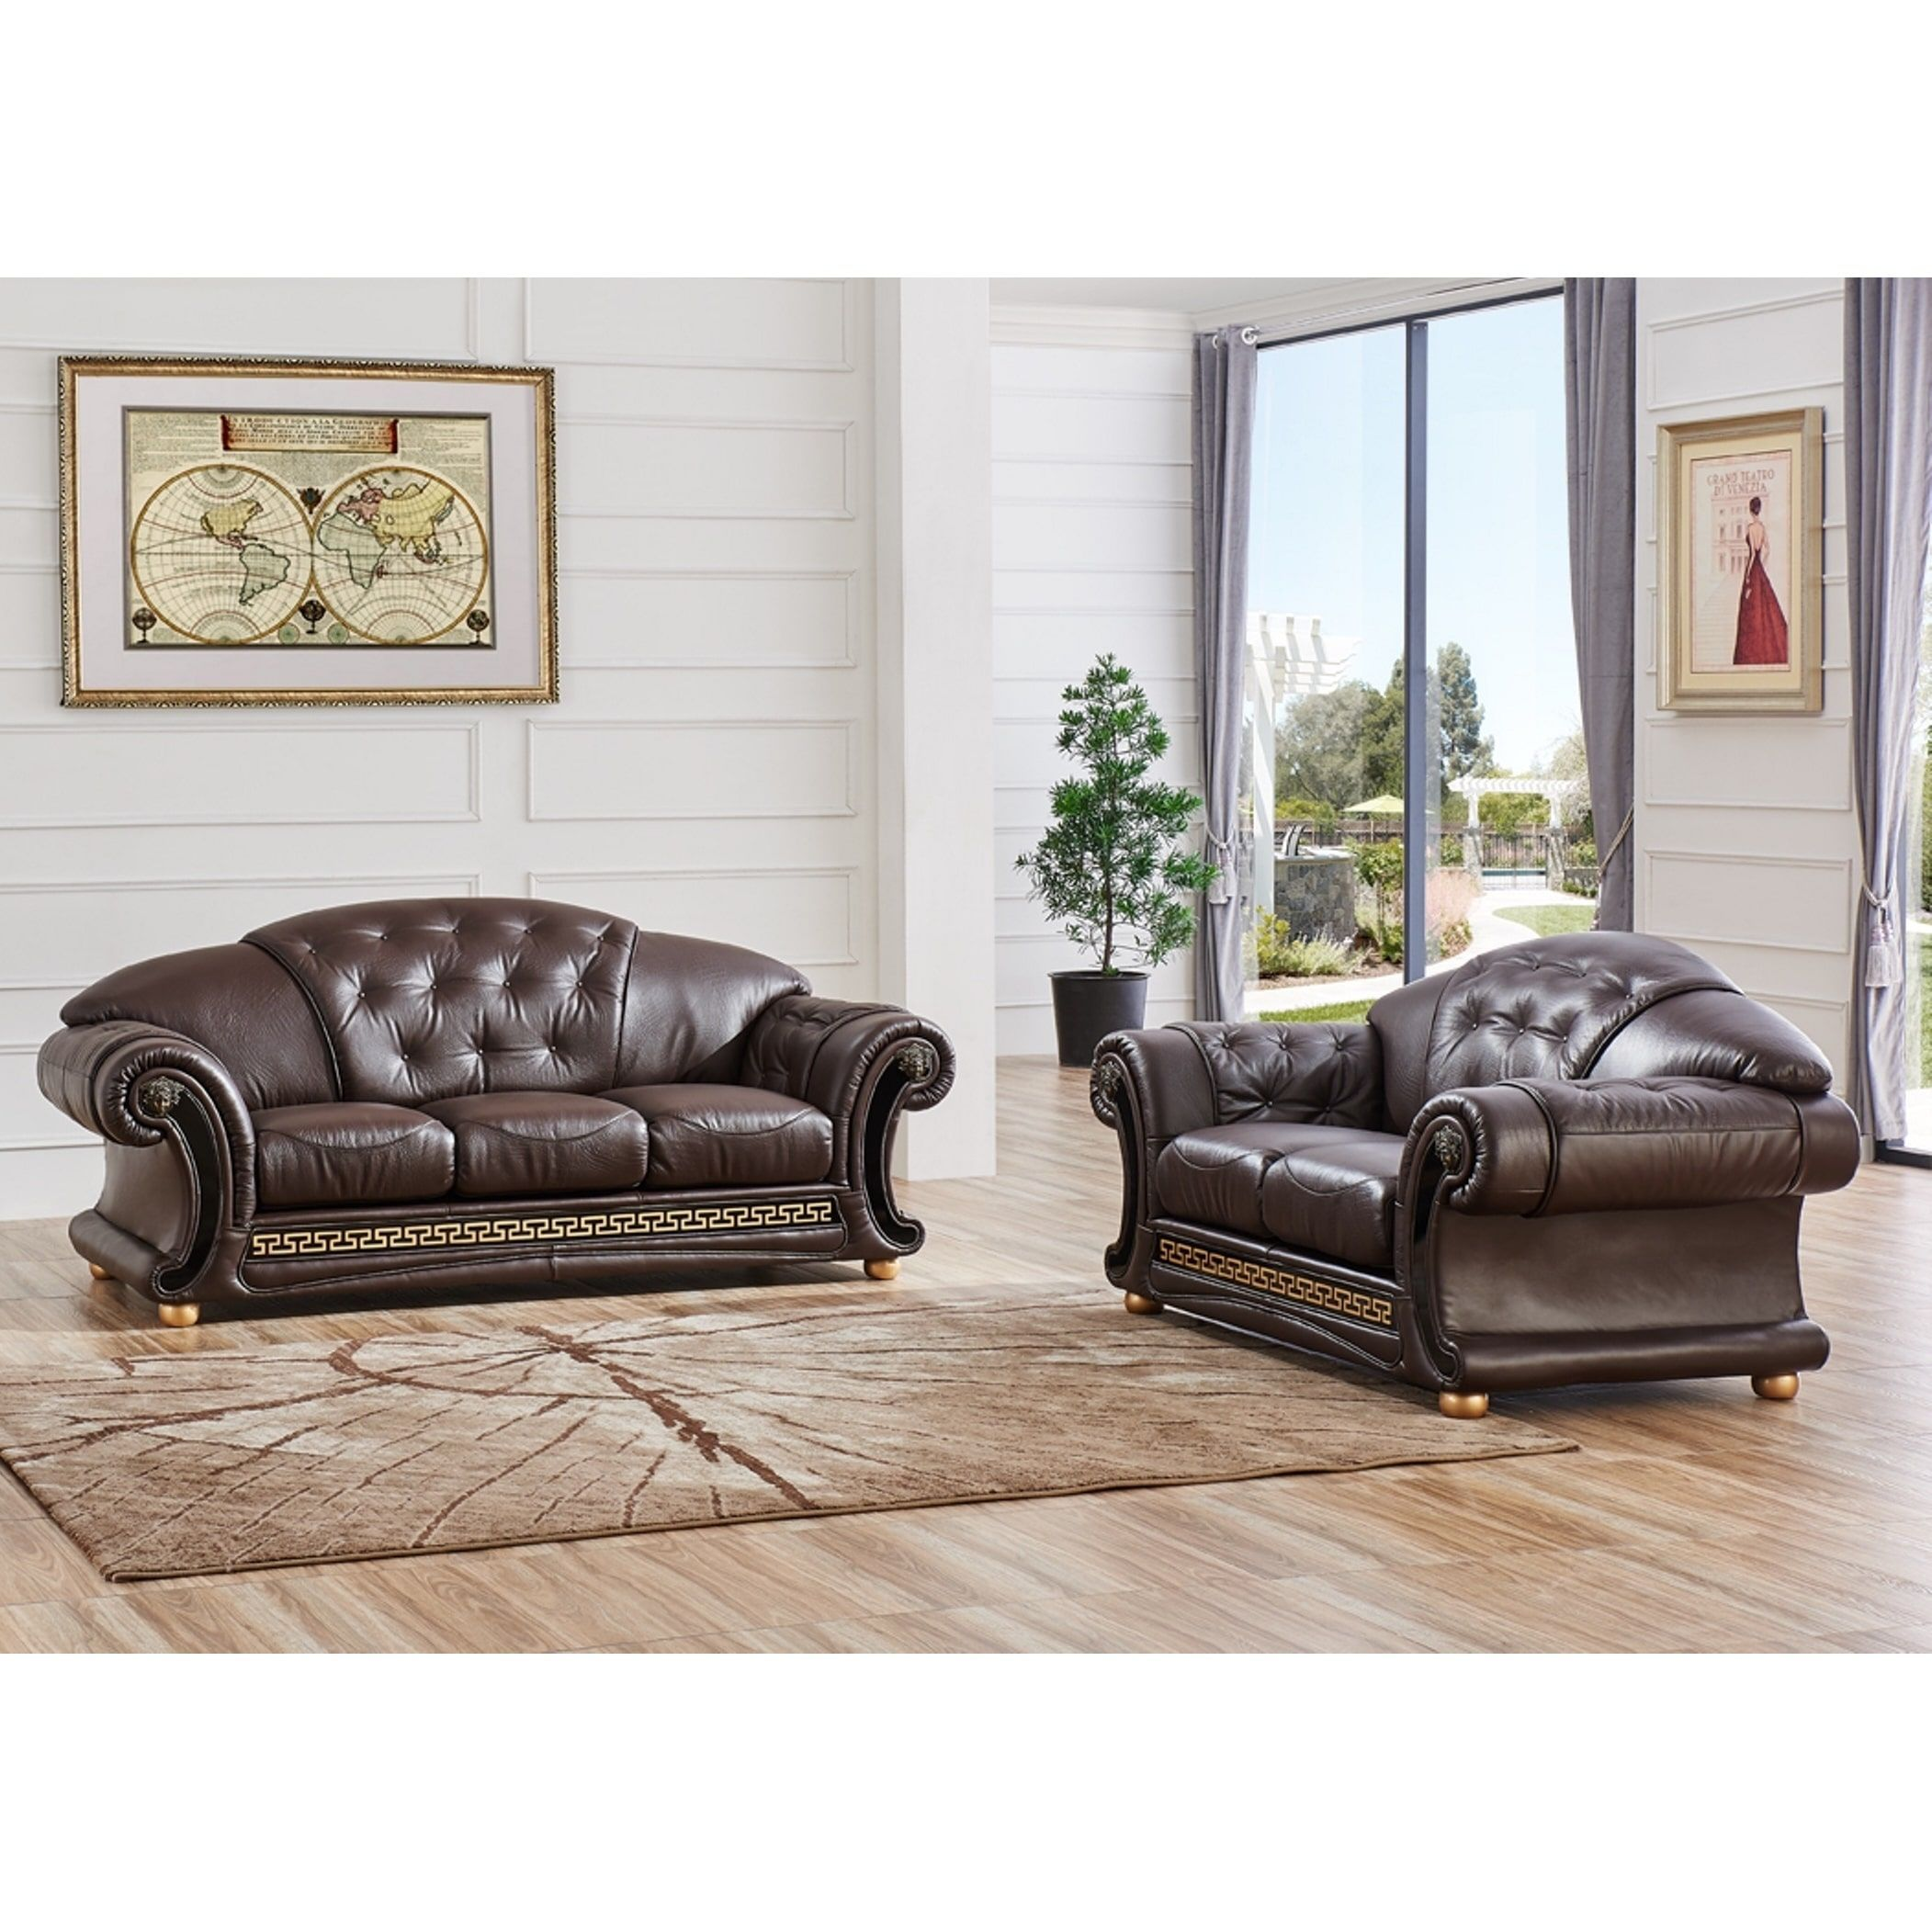 Luca Home 2-piece Split Brown Leather Living Room Set (Brown Half ...